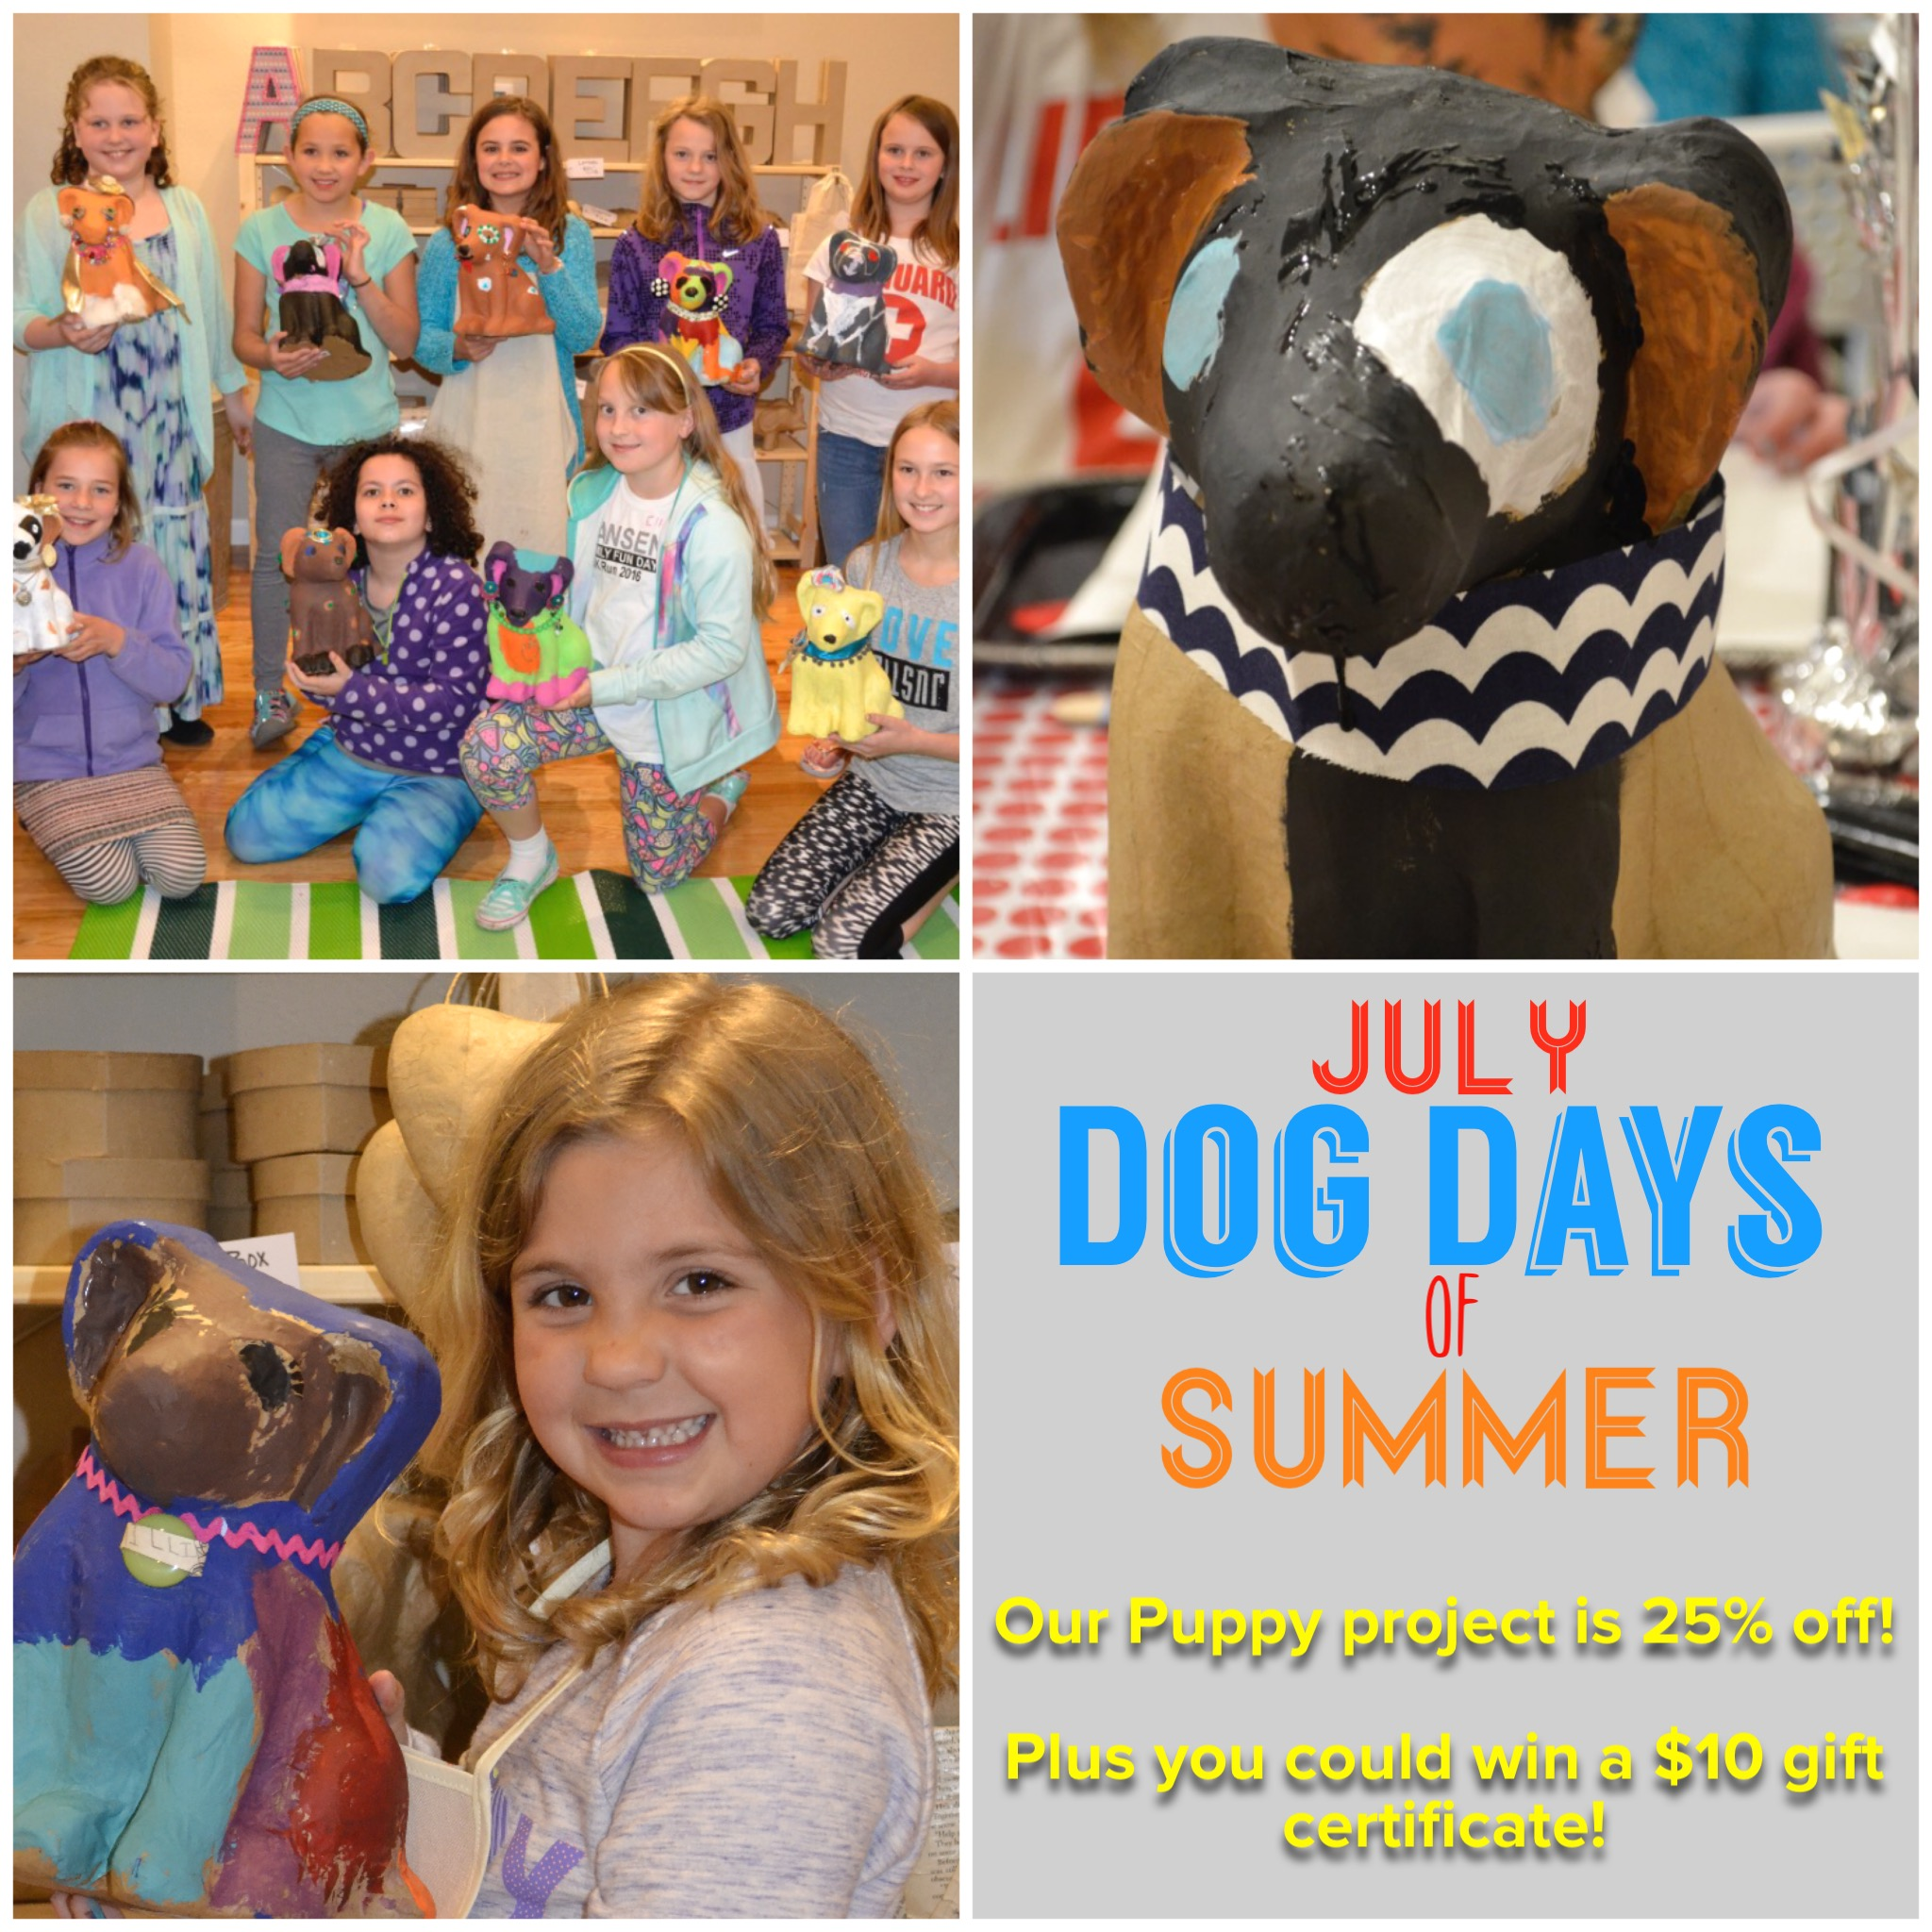 July is Dog Days of Summer Month!